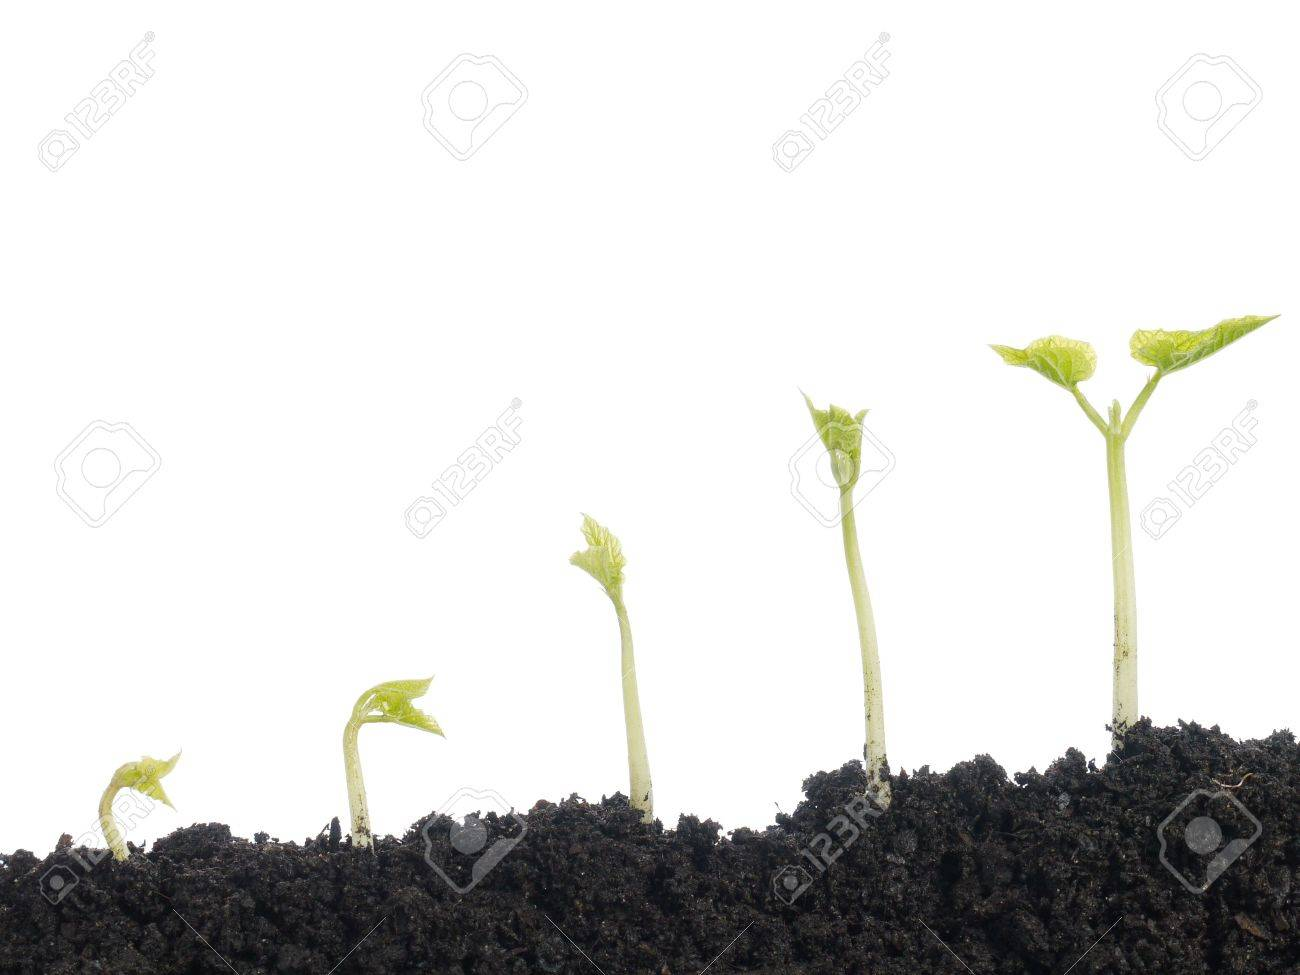 Five vegetation stages of bean plant shot over white background Stock Photo - 4403942